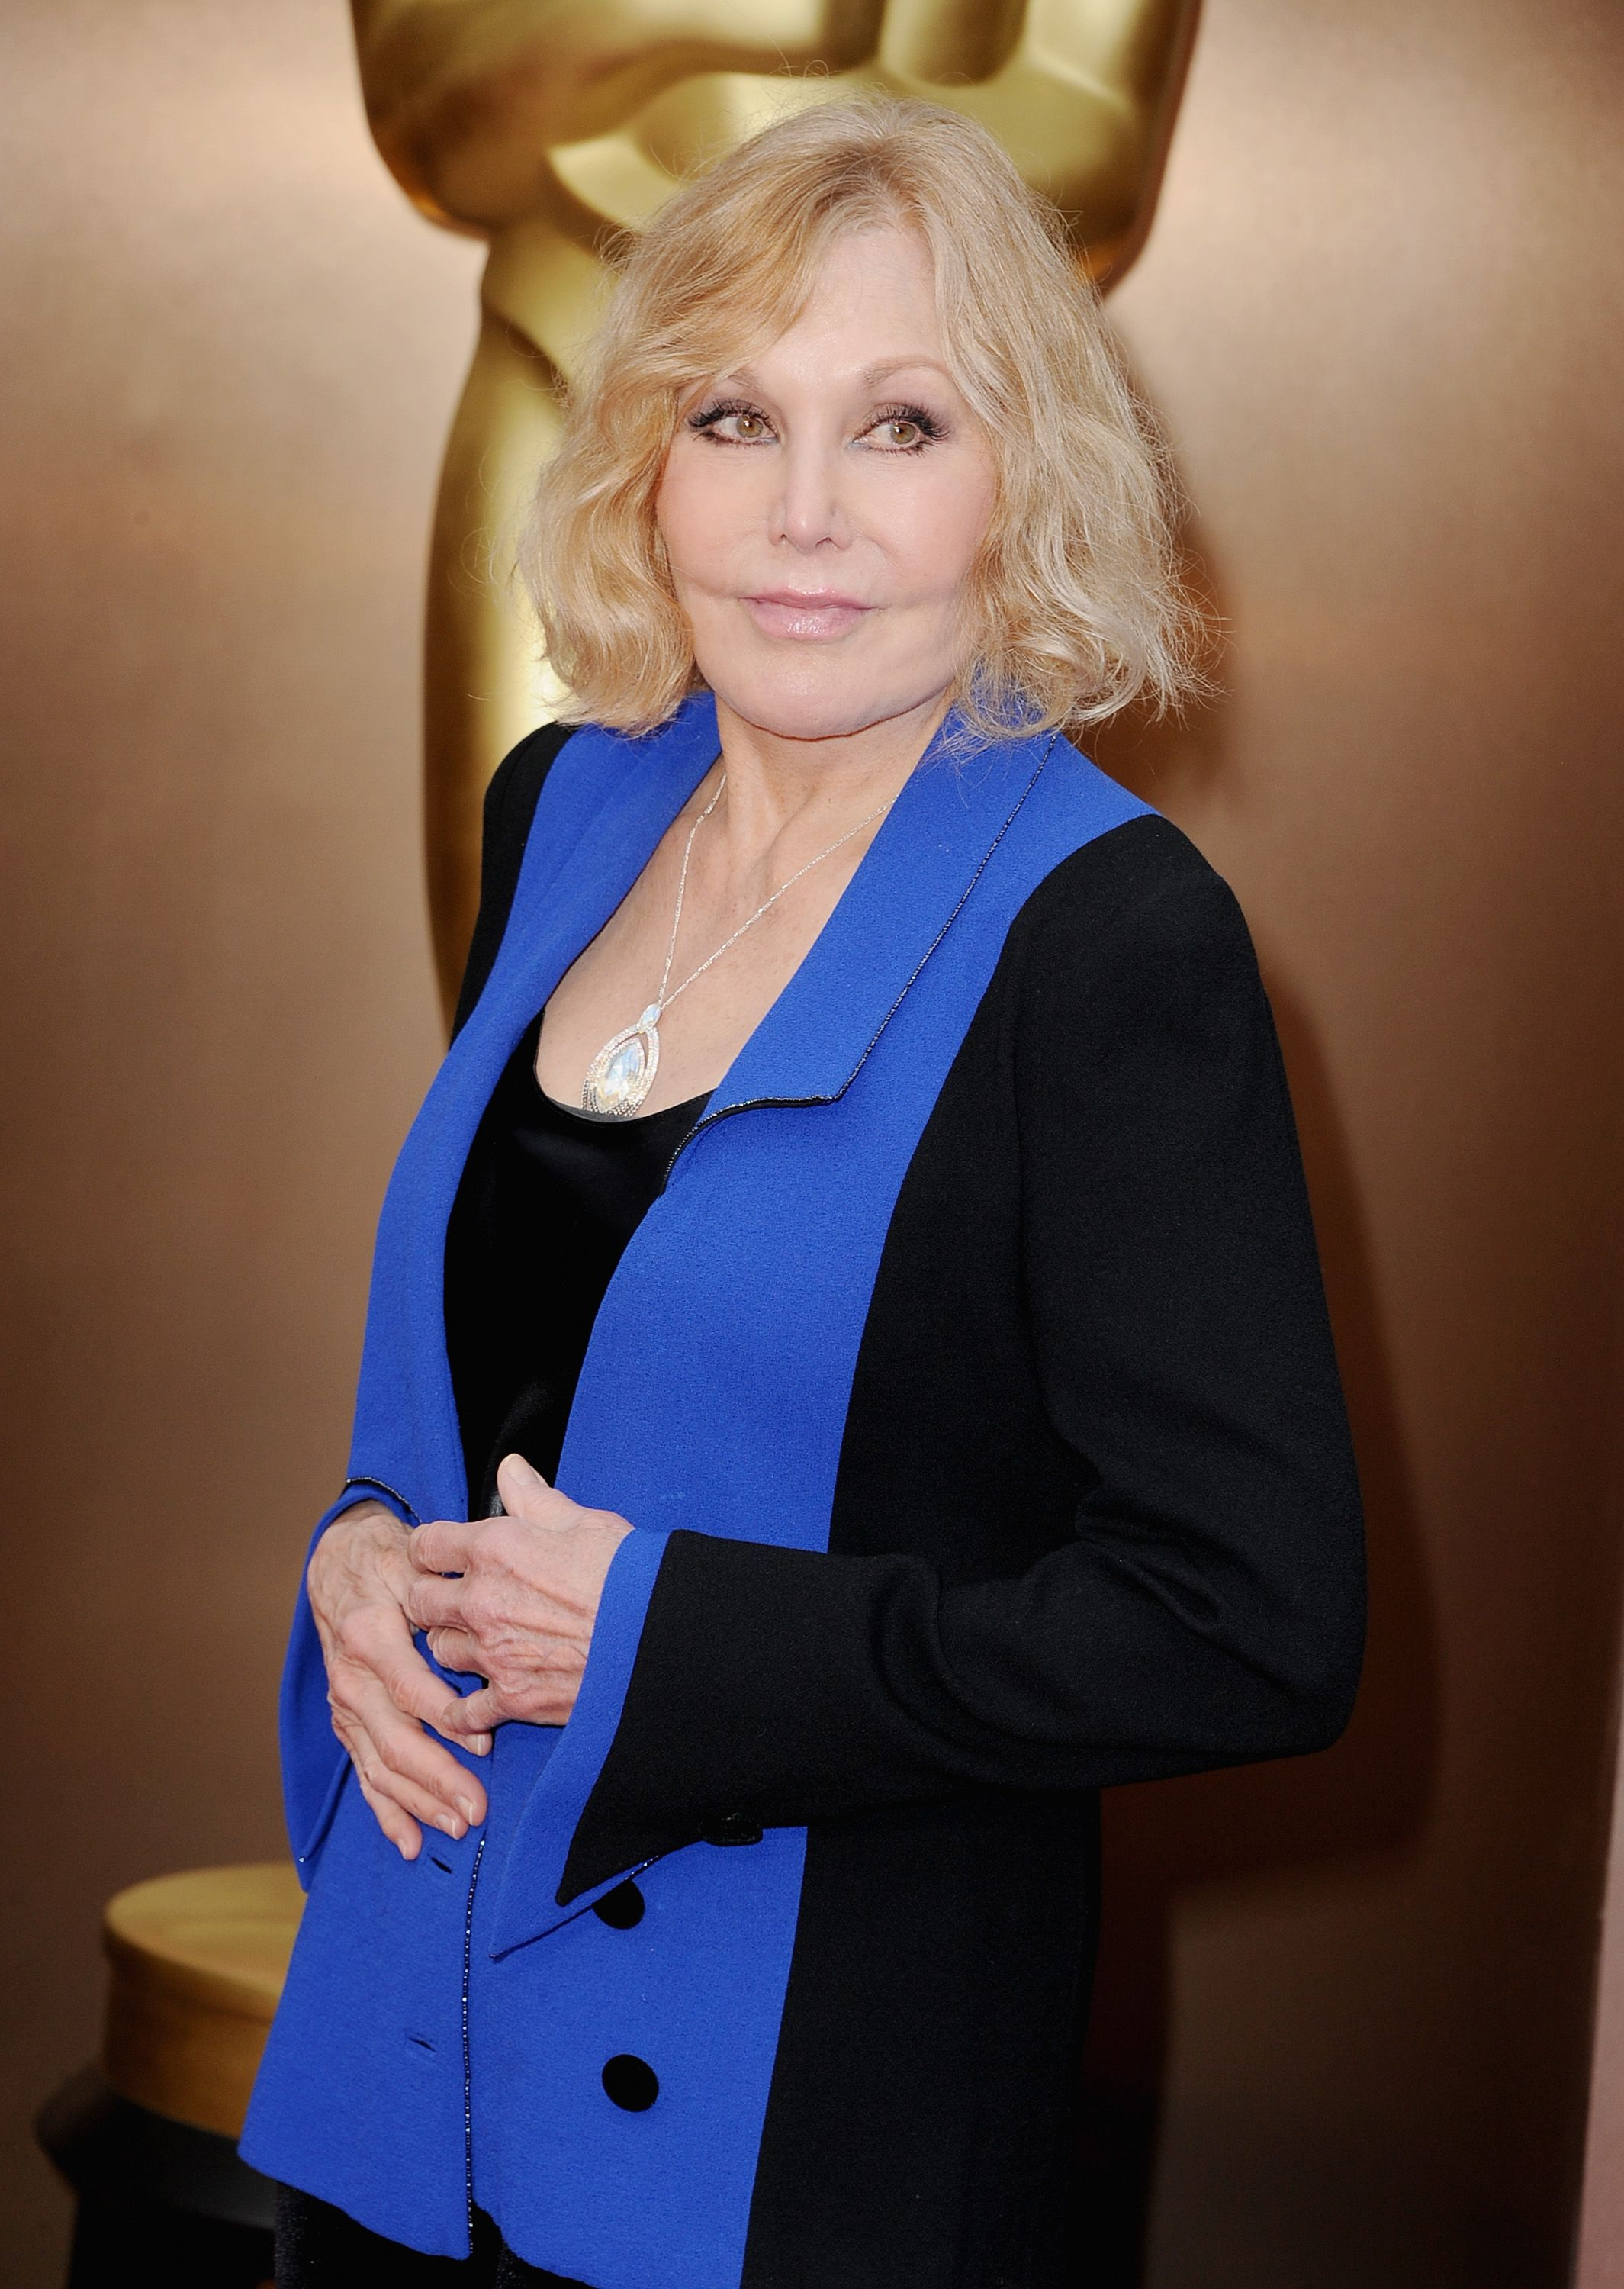 Kim Novak atthe Oscars held at Hollywood & Highland Center on March 2, 2014, in Hollywood, California   Photo:Steve Granitz/WireImage/Getty Images